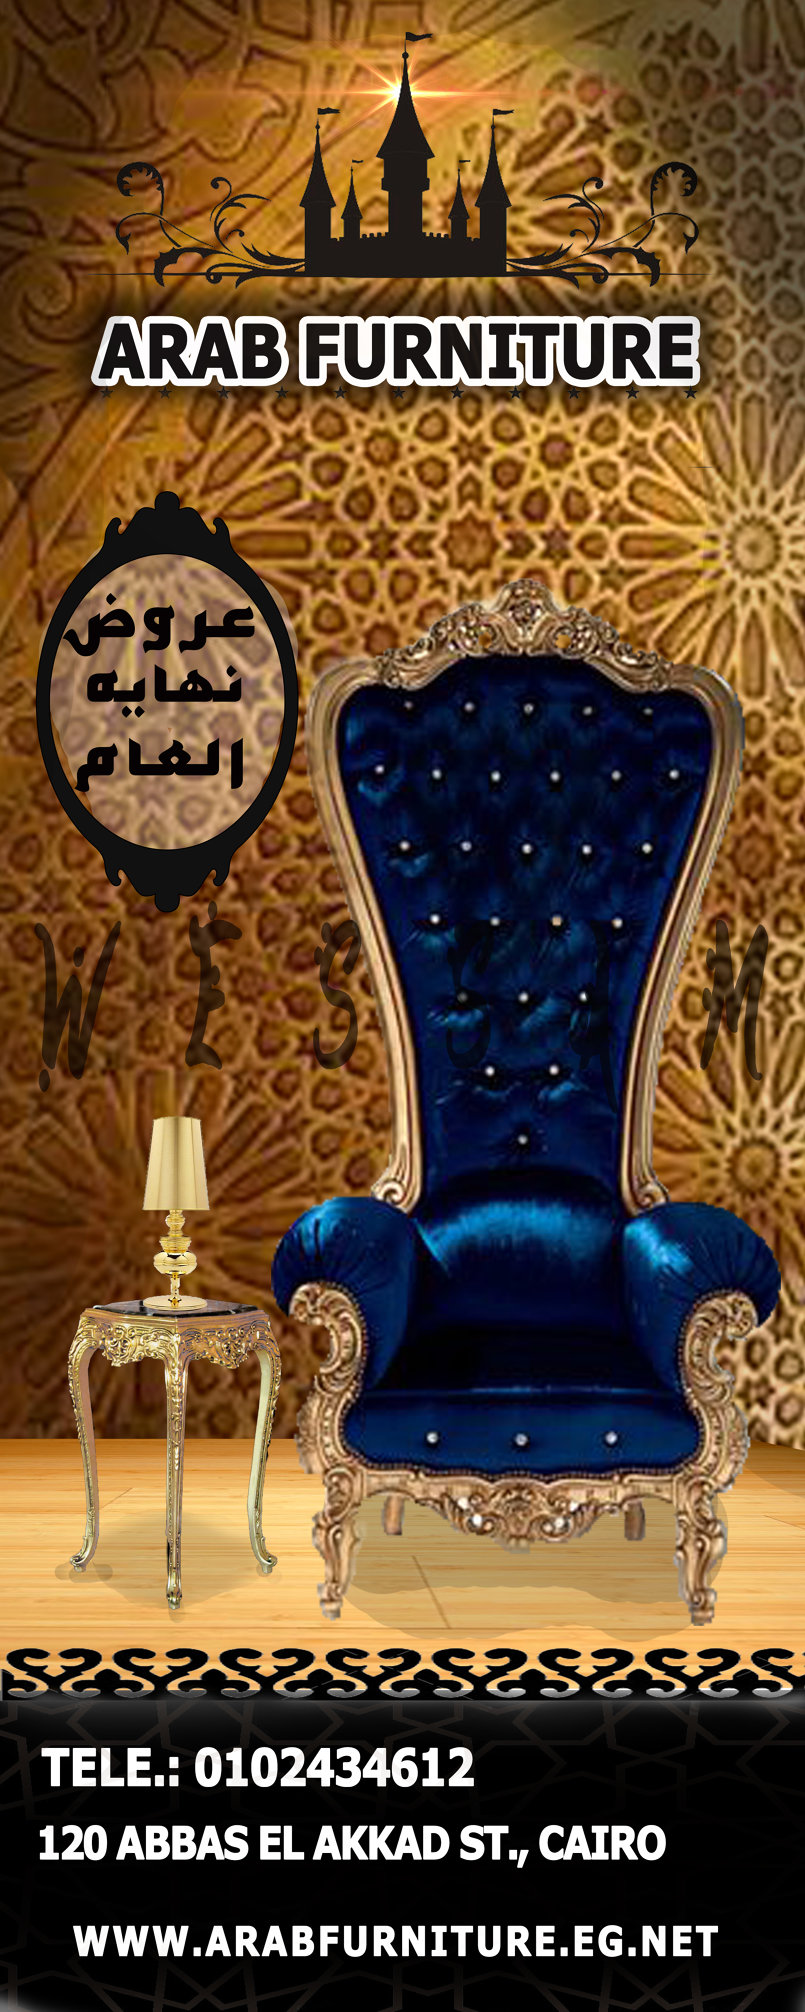 Arab Furniture